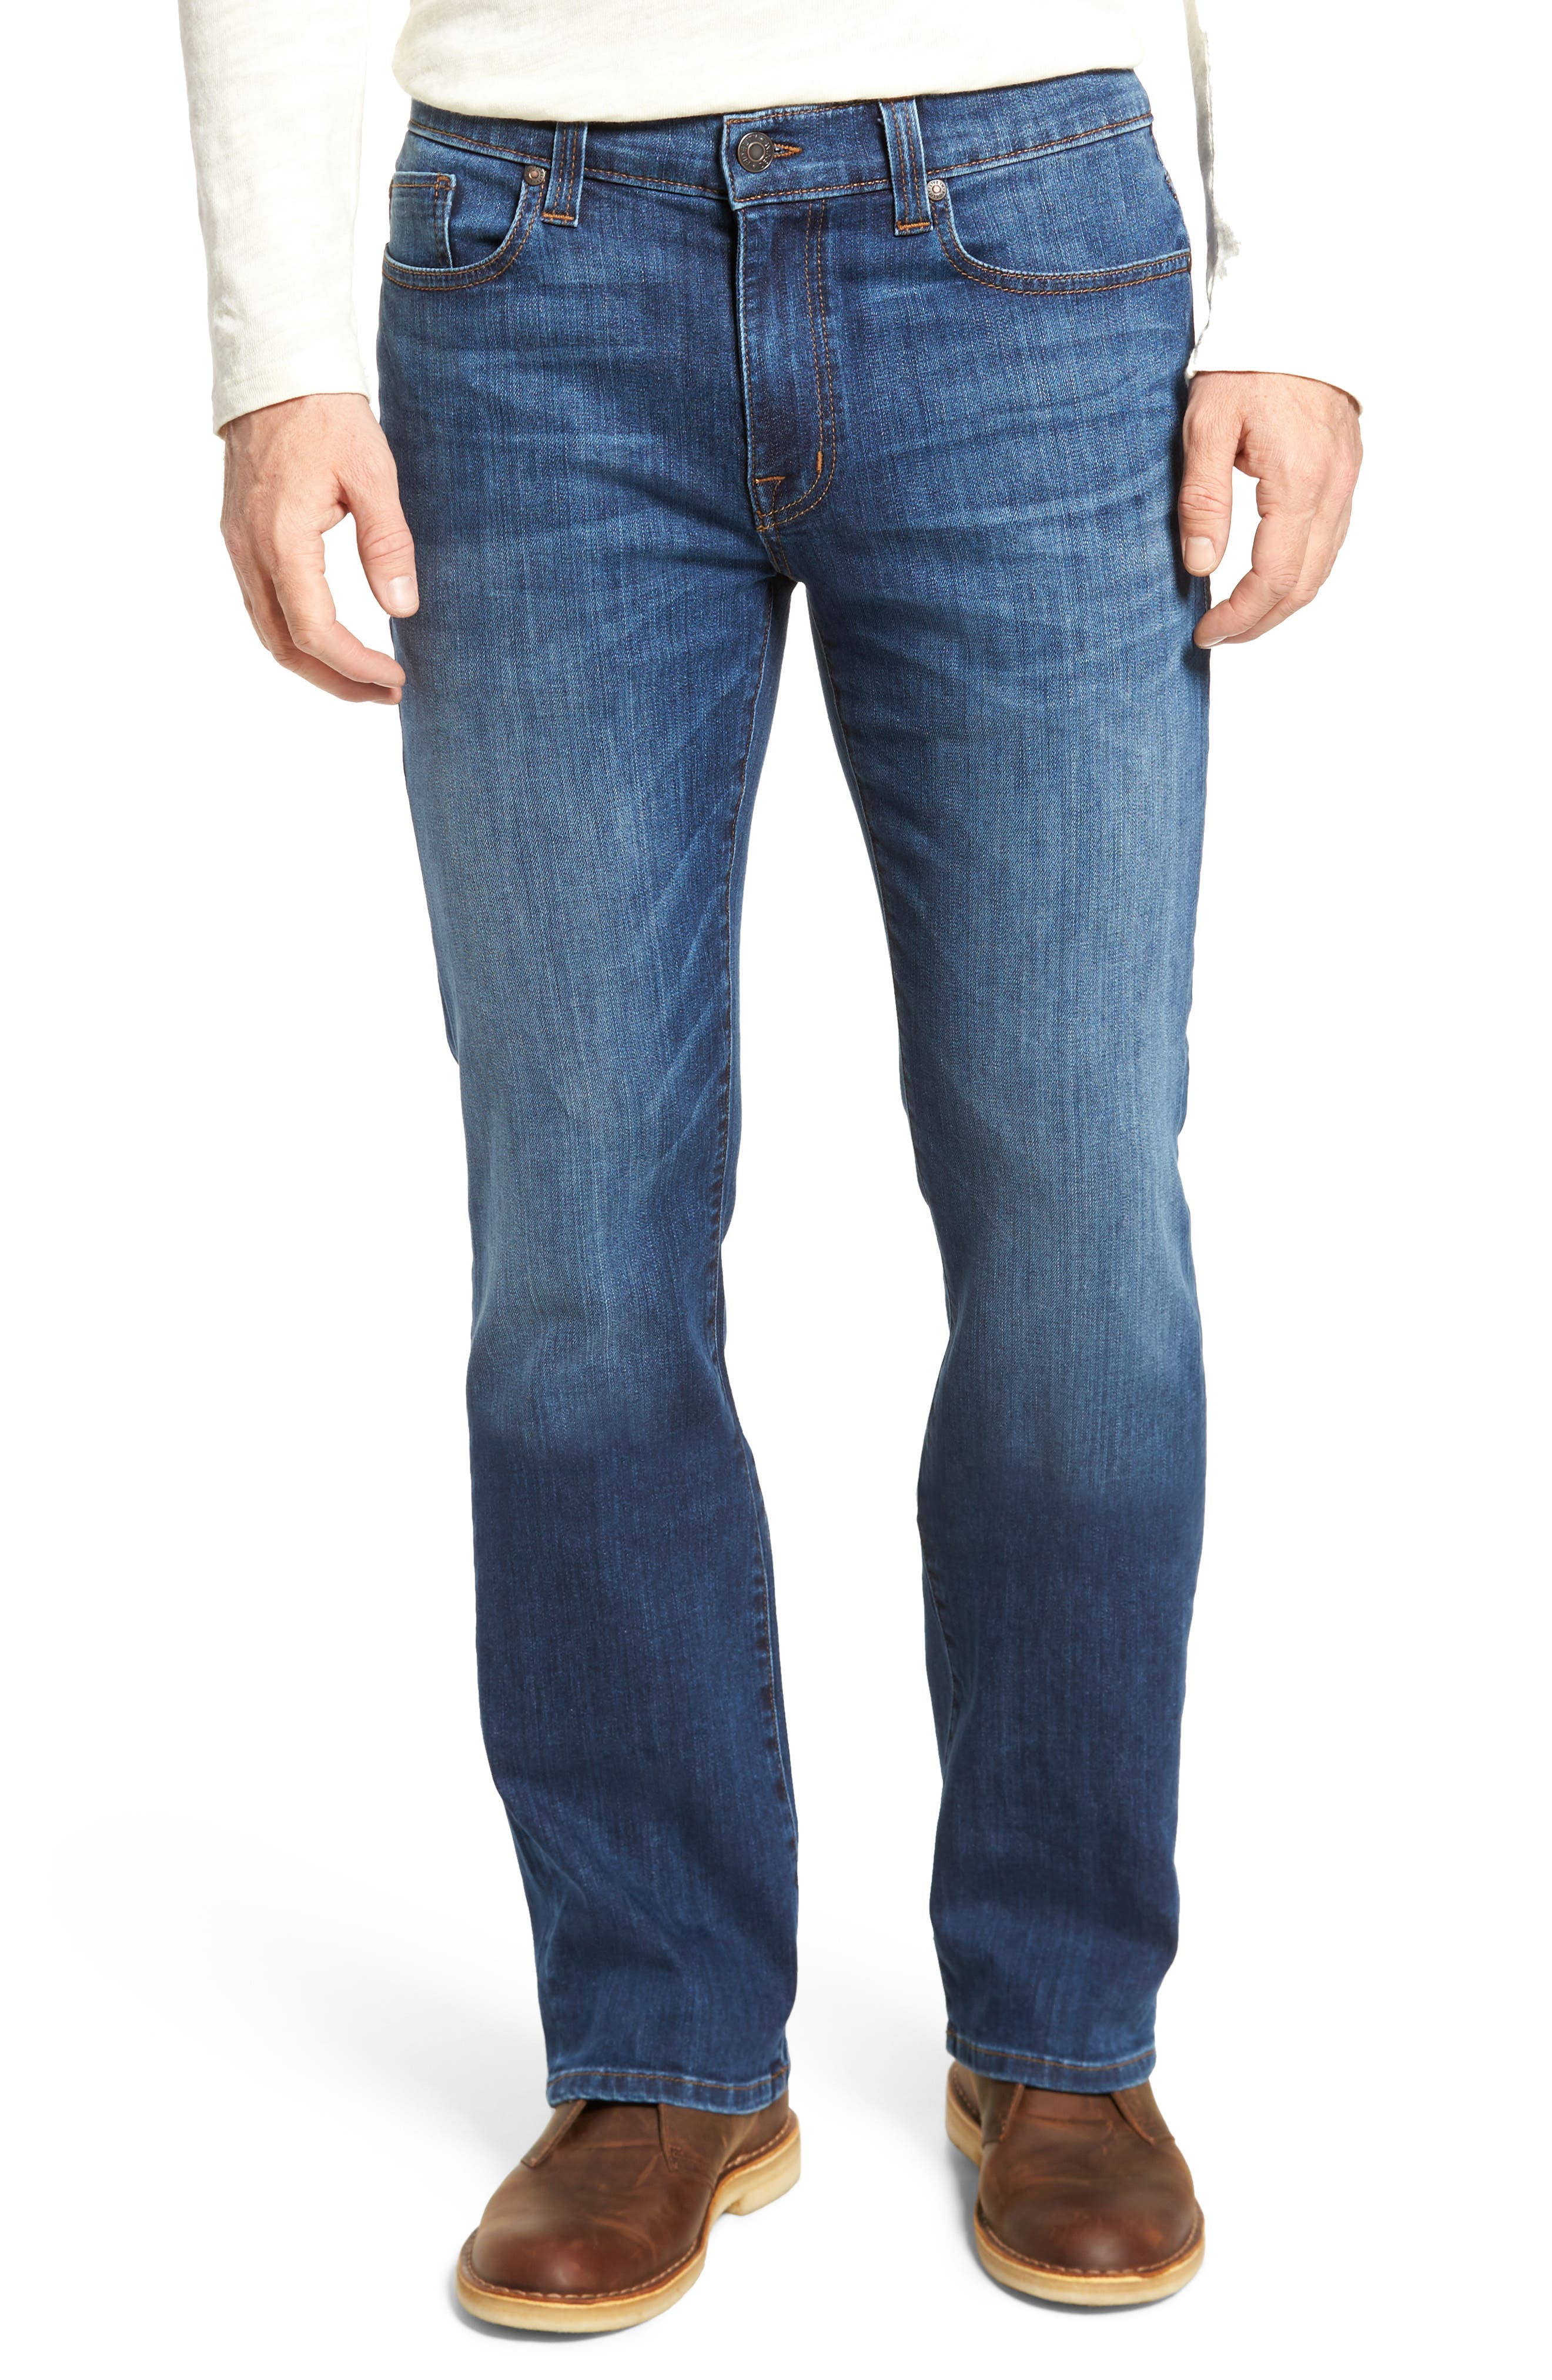 Main Image - Fidelity Denim 5011 Relaxed Fit Jeans (Liverpool)